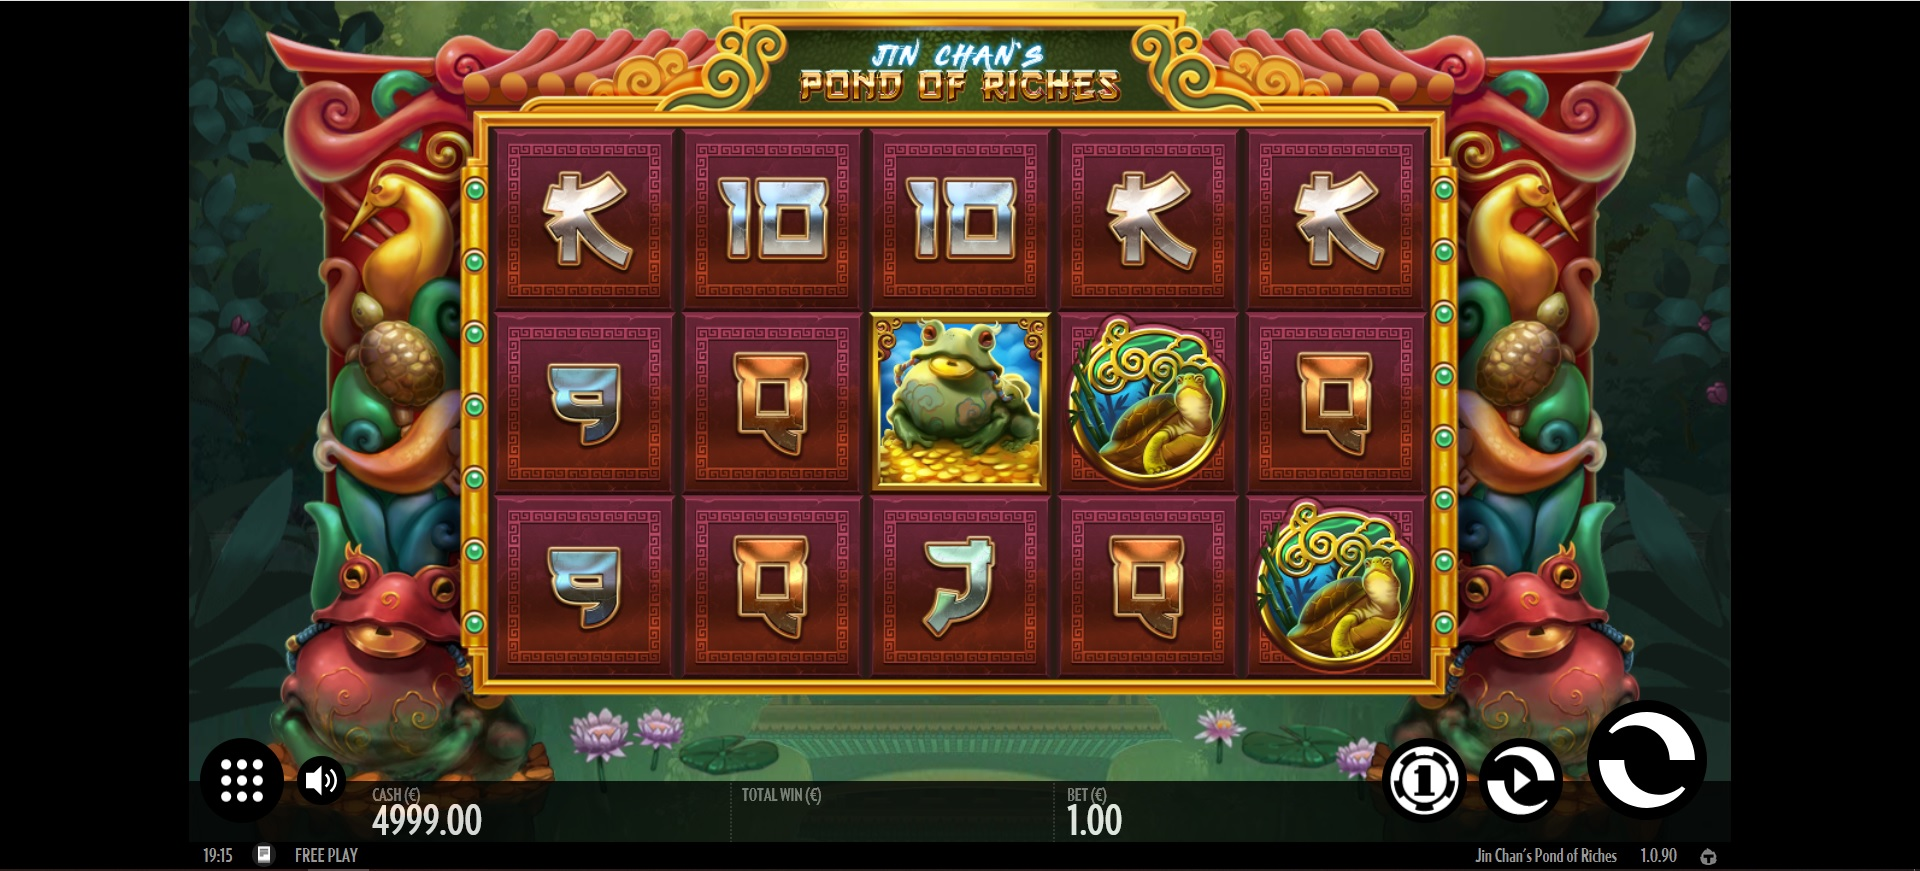 Jin Chan's Pond of Riches Reels during main game